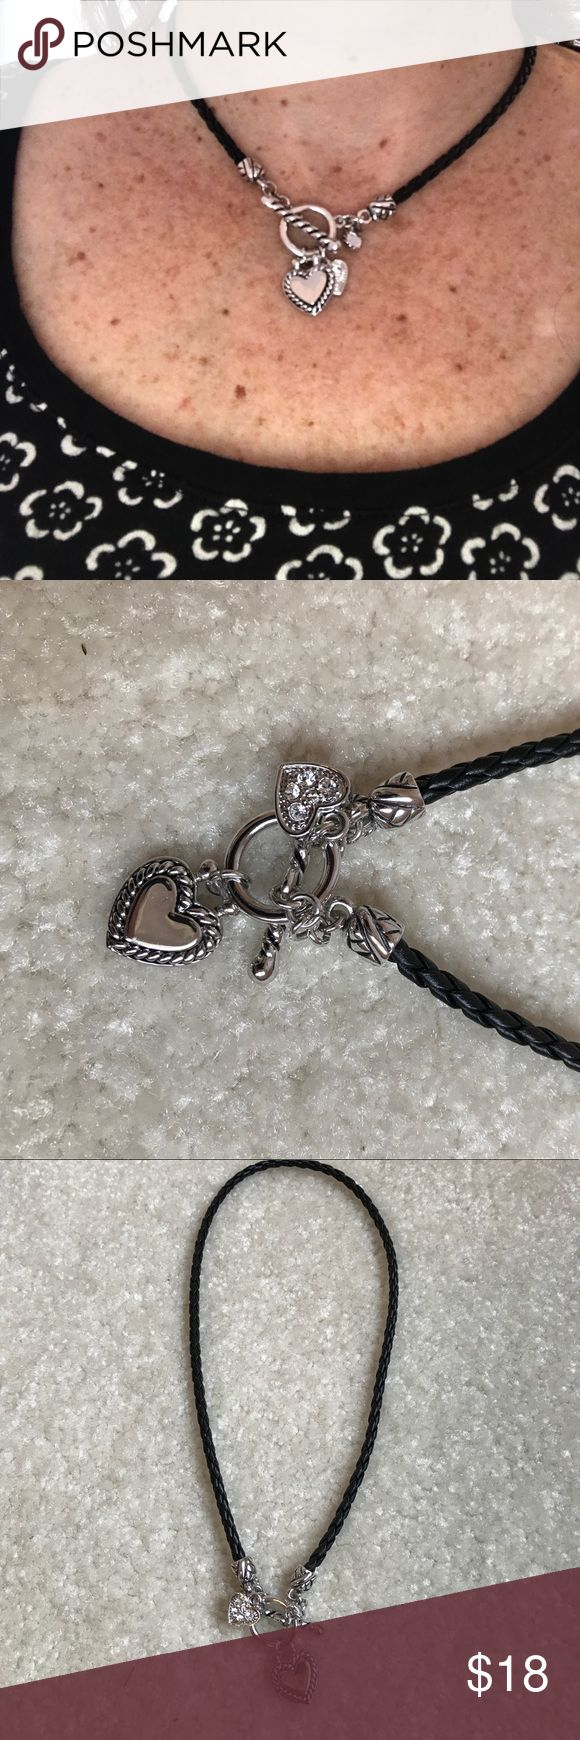 """Lia Sophia charm necklace Lia Sophia charm necklace on braided leather-like chain. 16"""" long. Comes with box. Lia Sophia Jewelry Necklaces"""